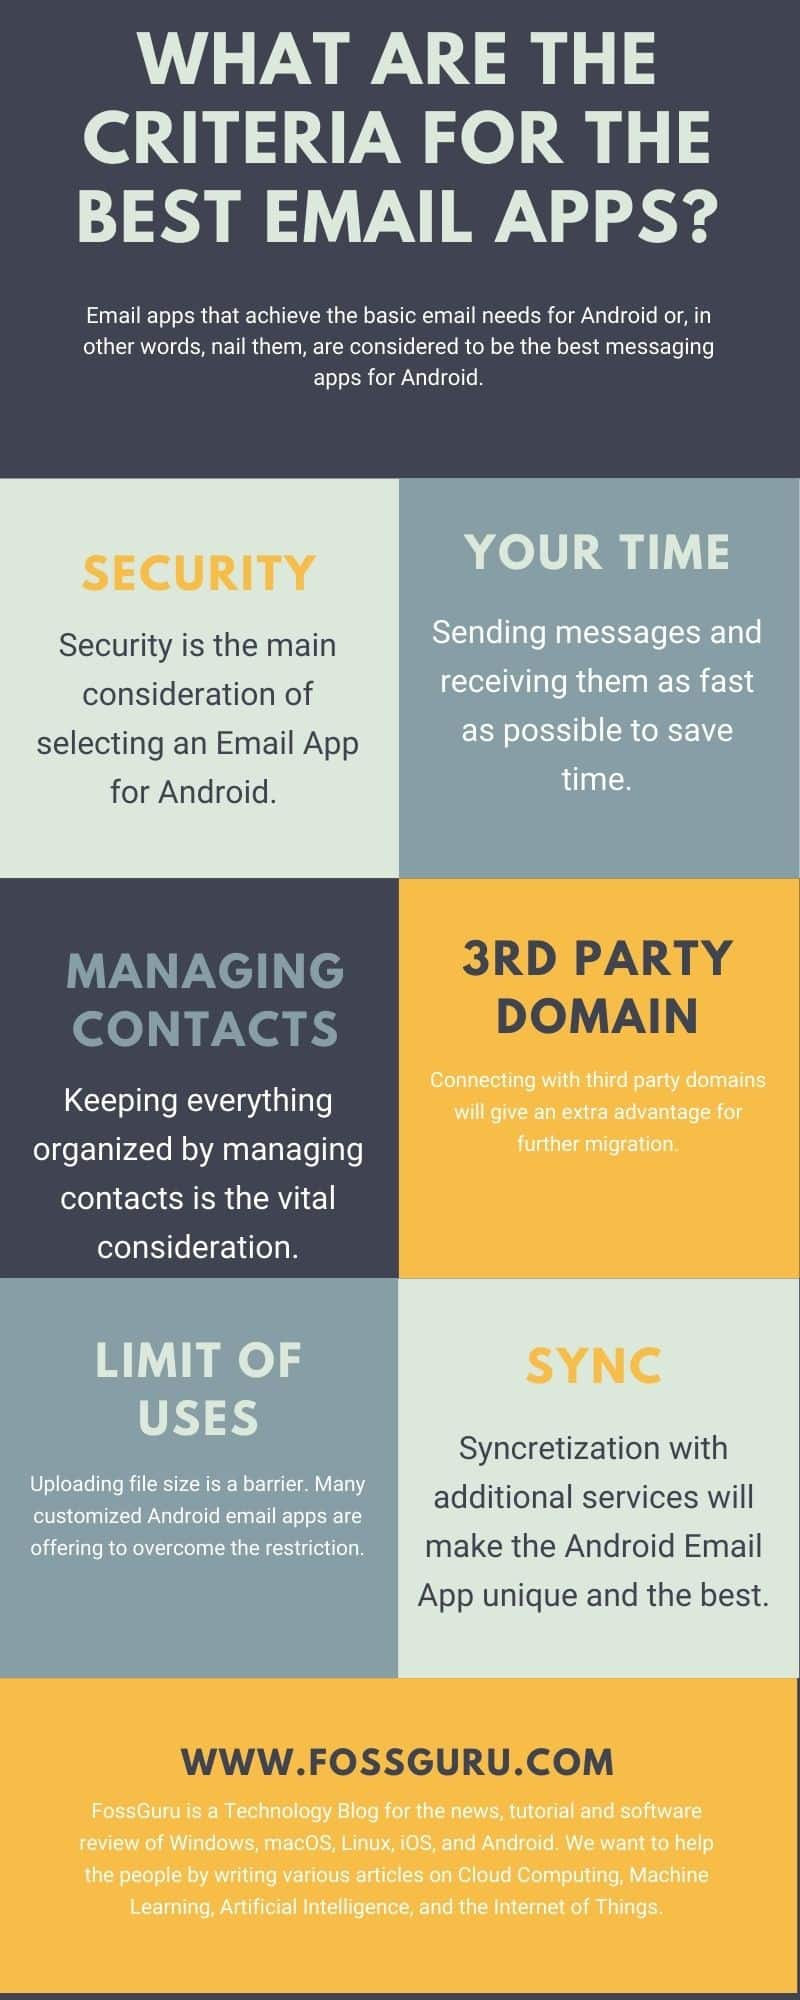 What Are The Criteria For The Best Email Apps?